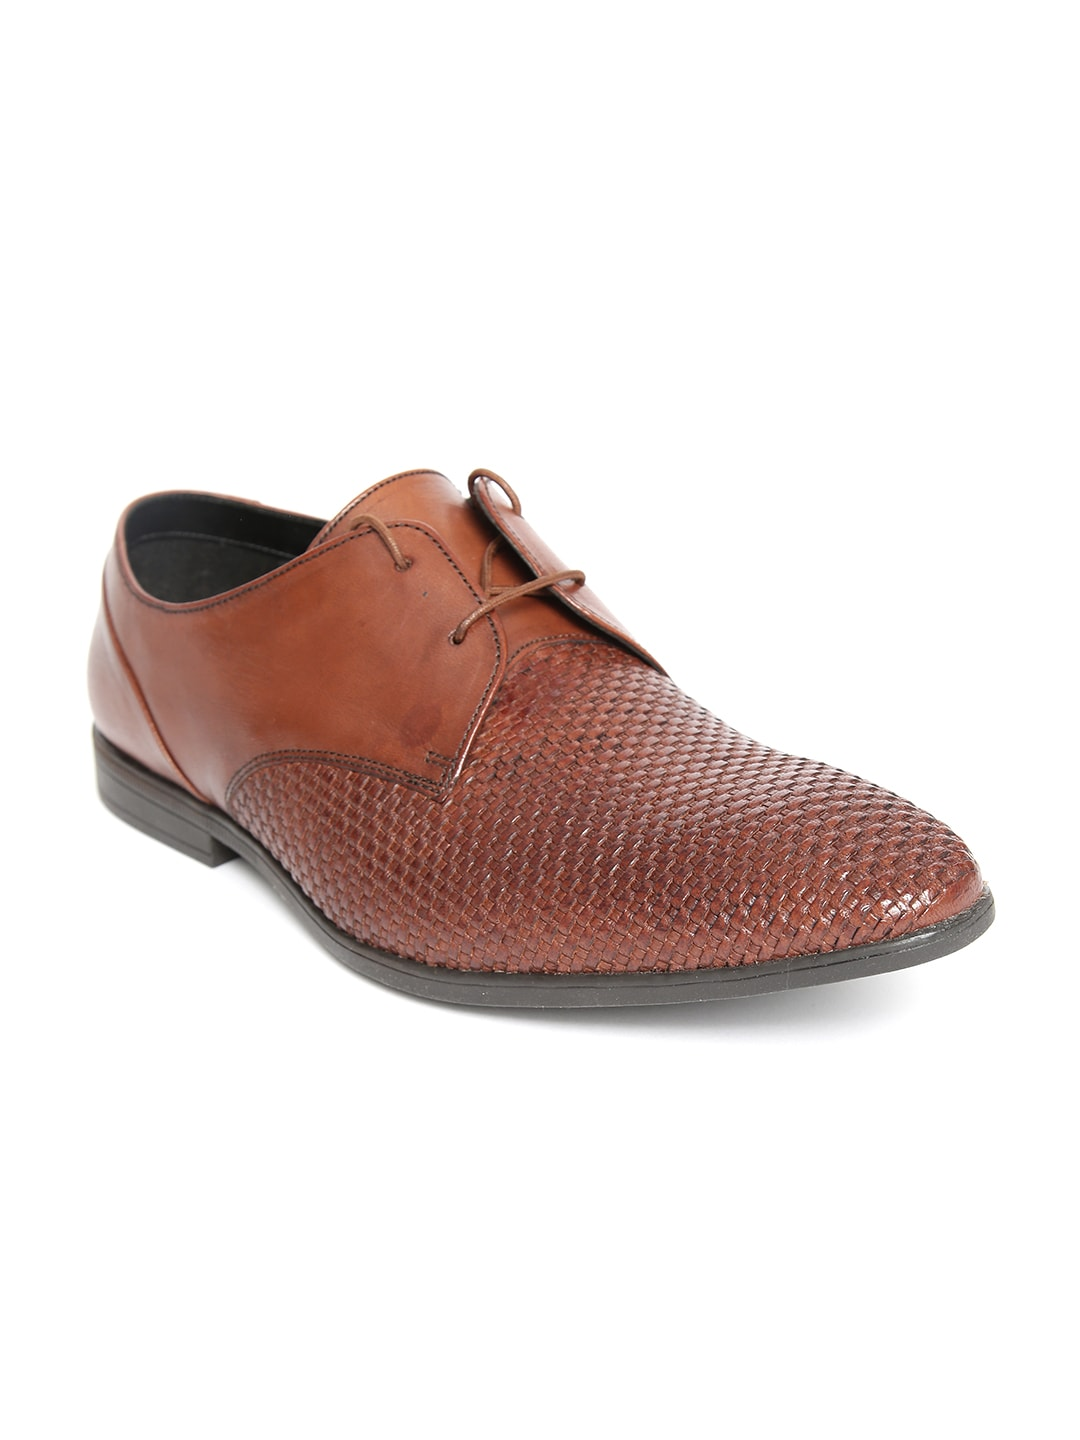 95ee1a353e7e CLARKS - Exclusive Clarks Shoes Online Store in India - Myntra